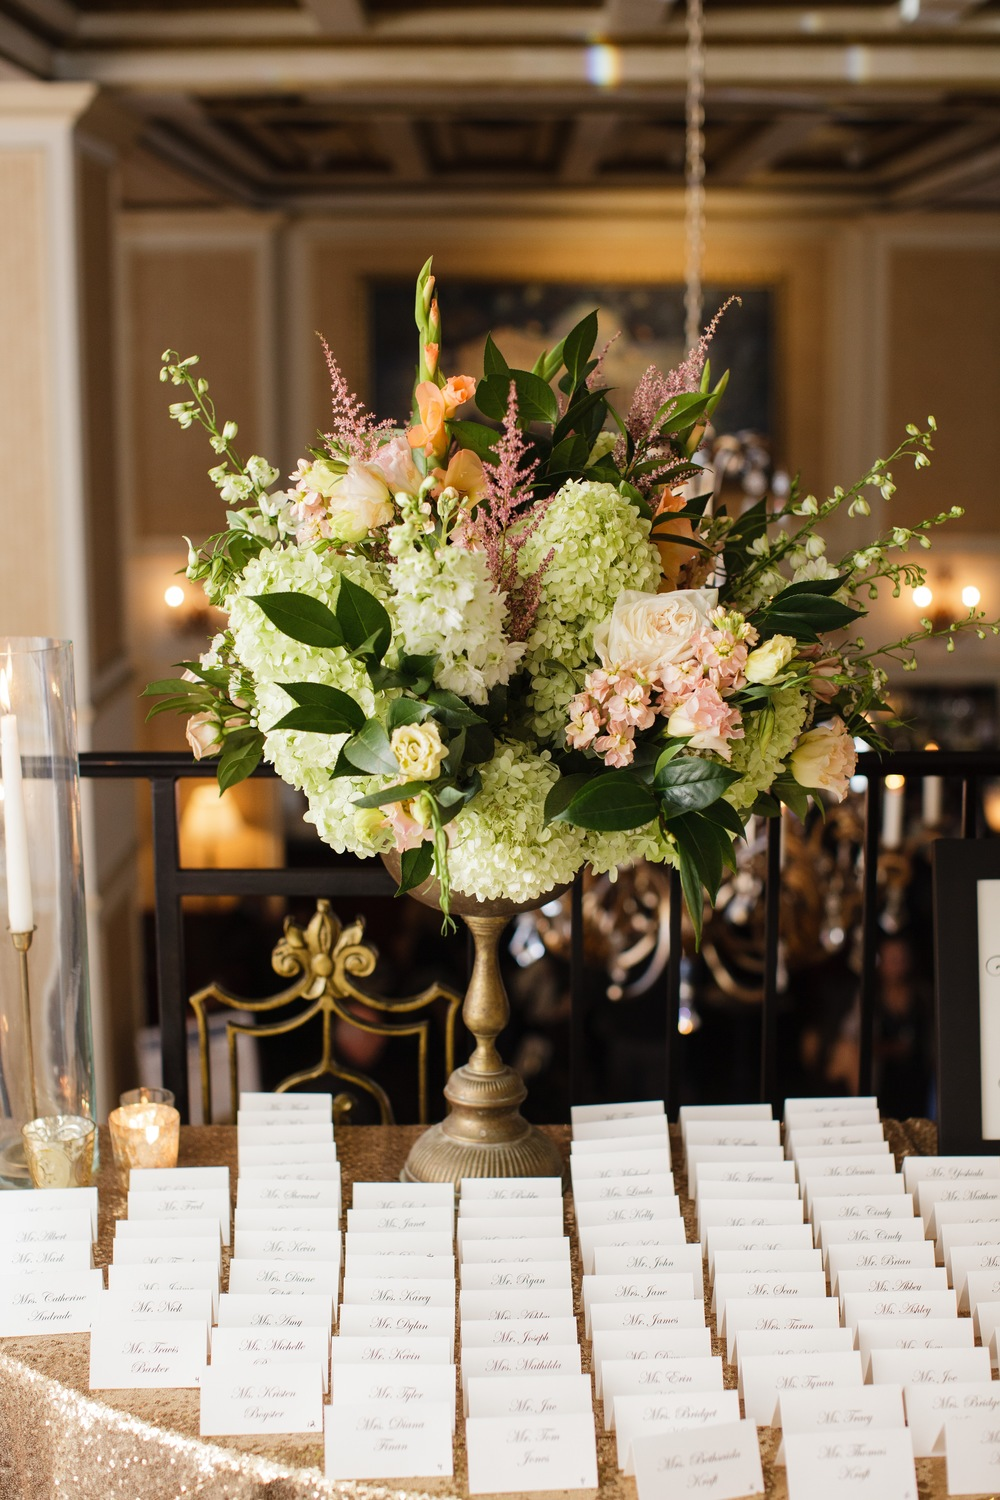 Place-card table by Fleur Inc, photo by Sarah Postma Photography